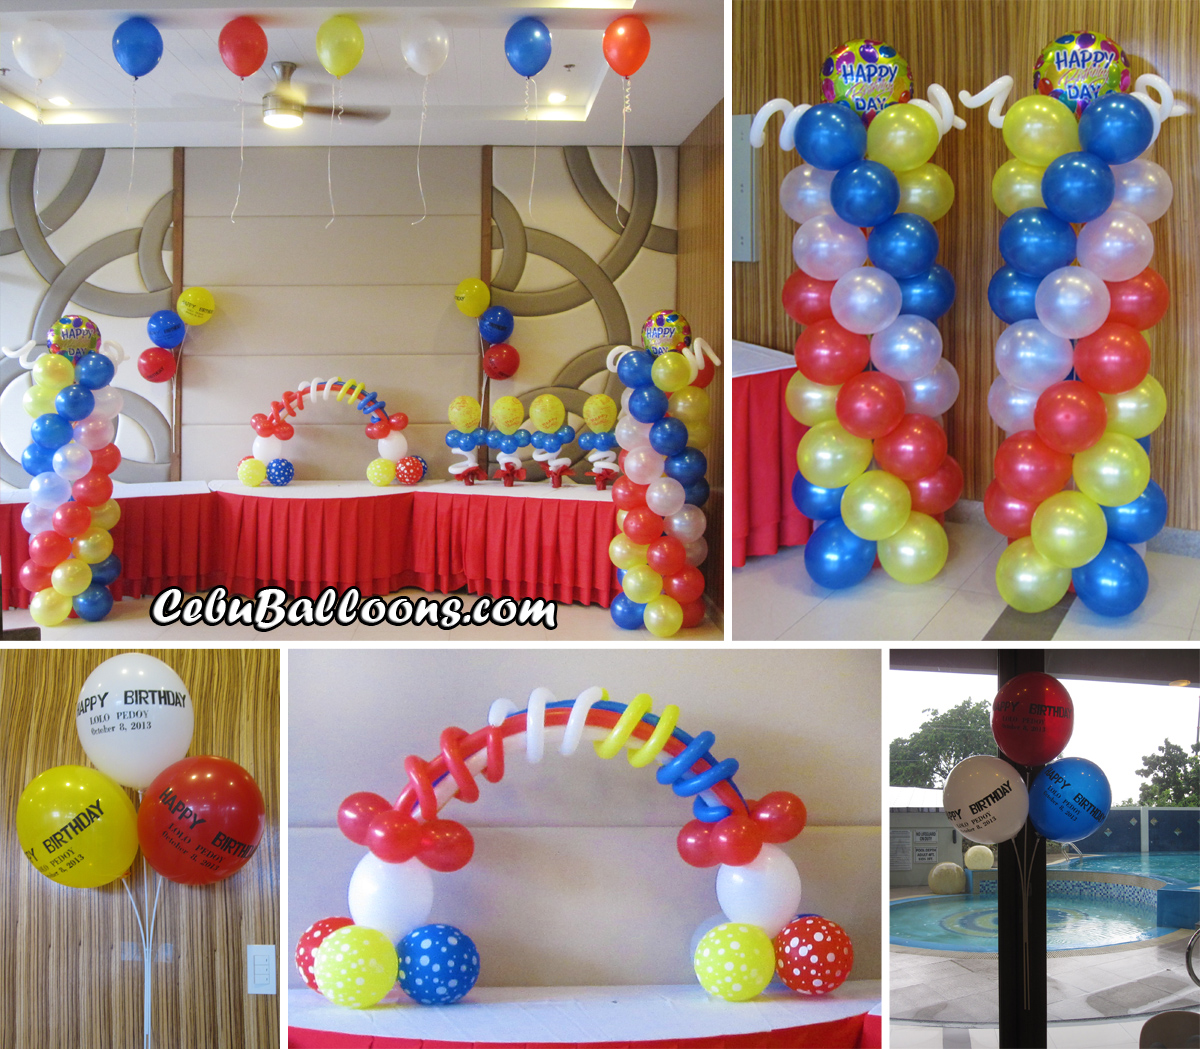 Balloons decorations for birthday image inspiration of for Balloon decoration ideas for birthday party